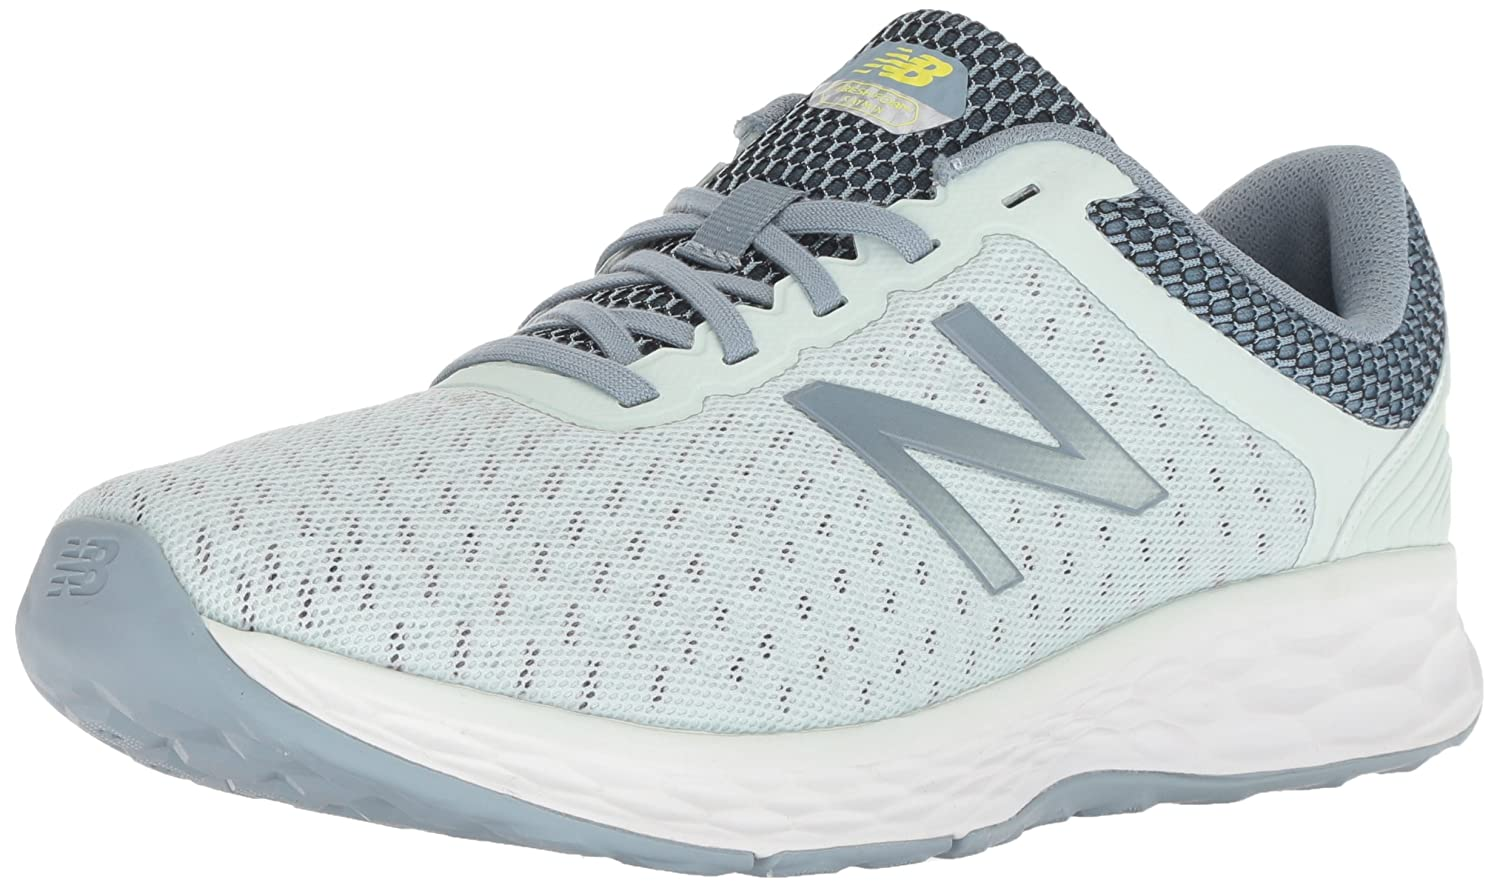 New Balance Women's Kaymin Trail v1 Fresh Foam Trail Running Shoe B075R7N556 7 B(M) US|Ocean Air